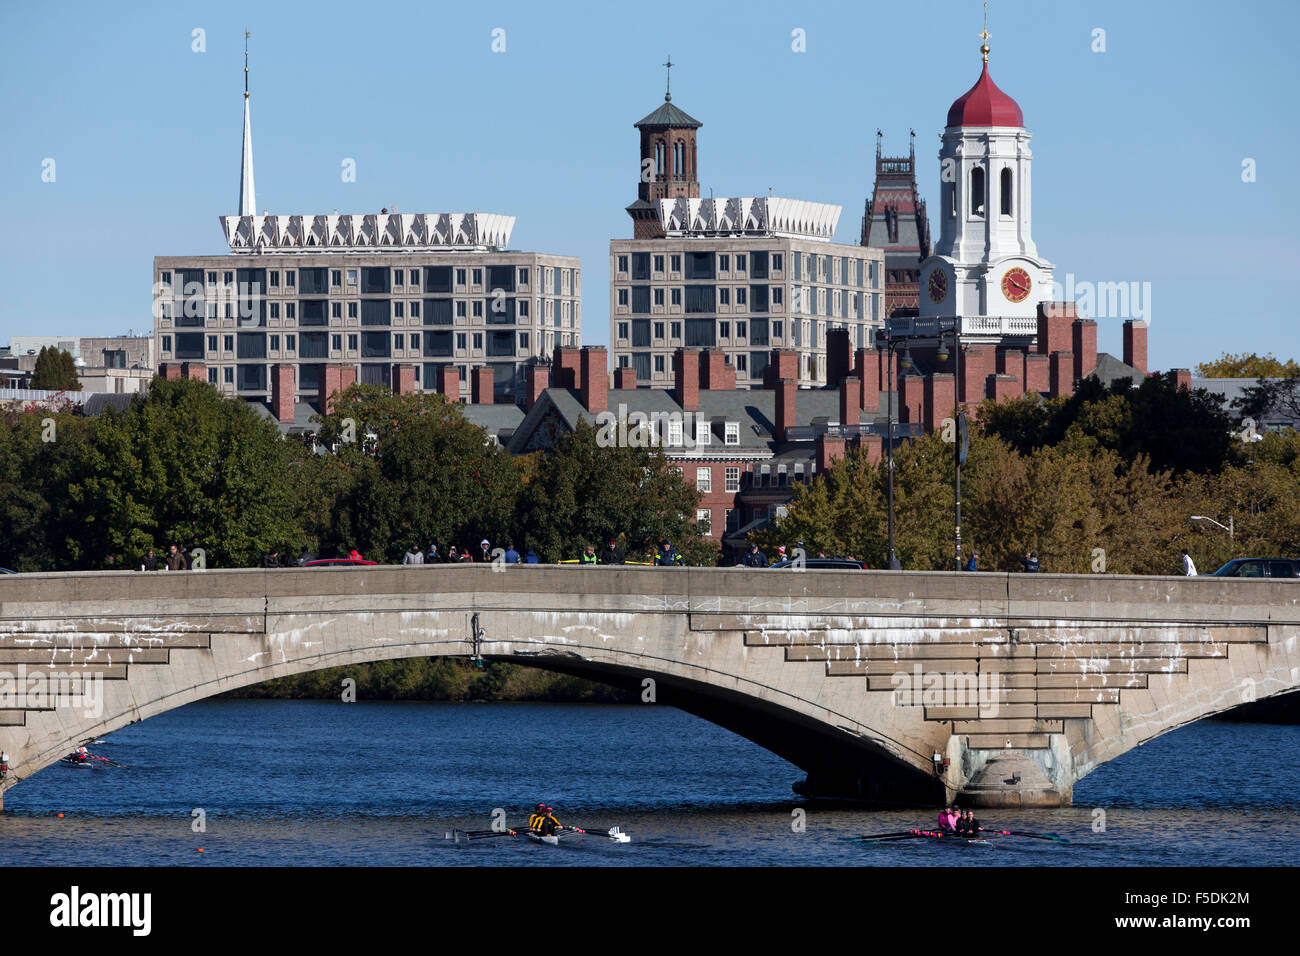 Charles River, Harvard University, Cambridge, Massachusetts - Stock Image